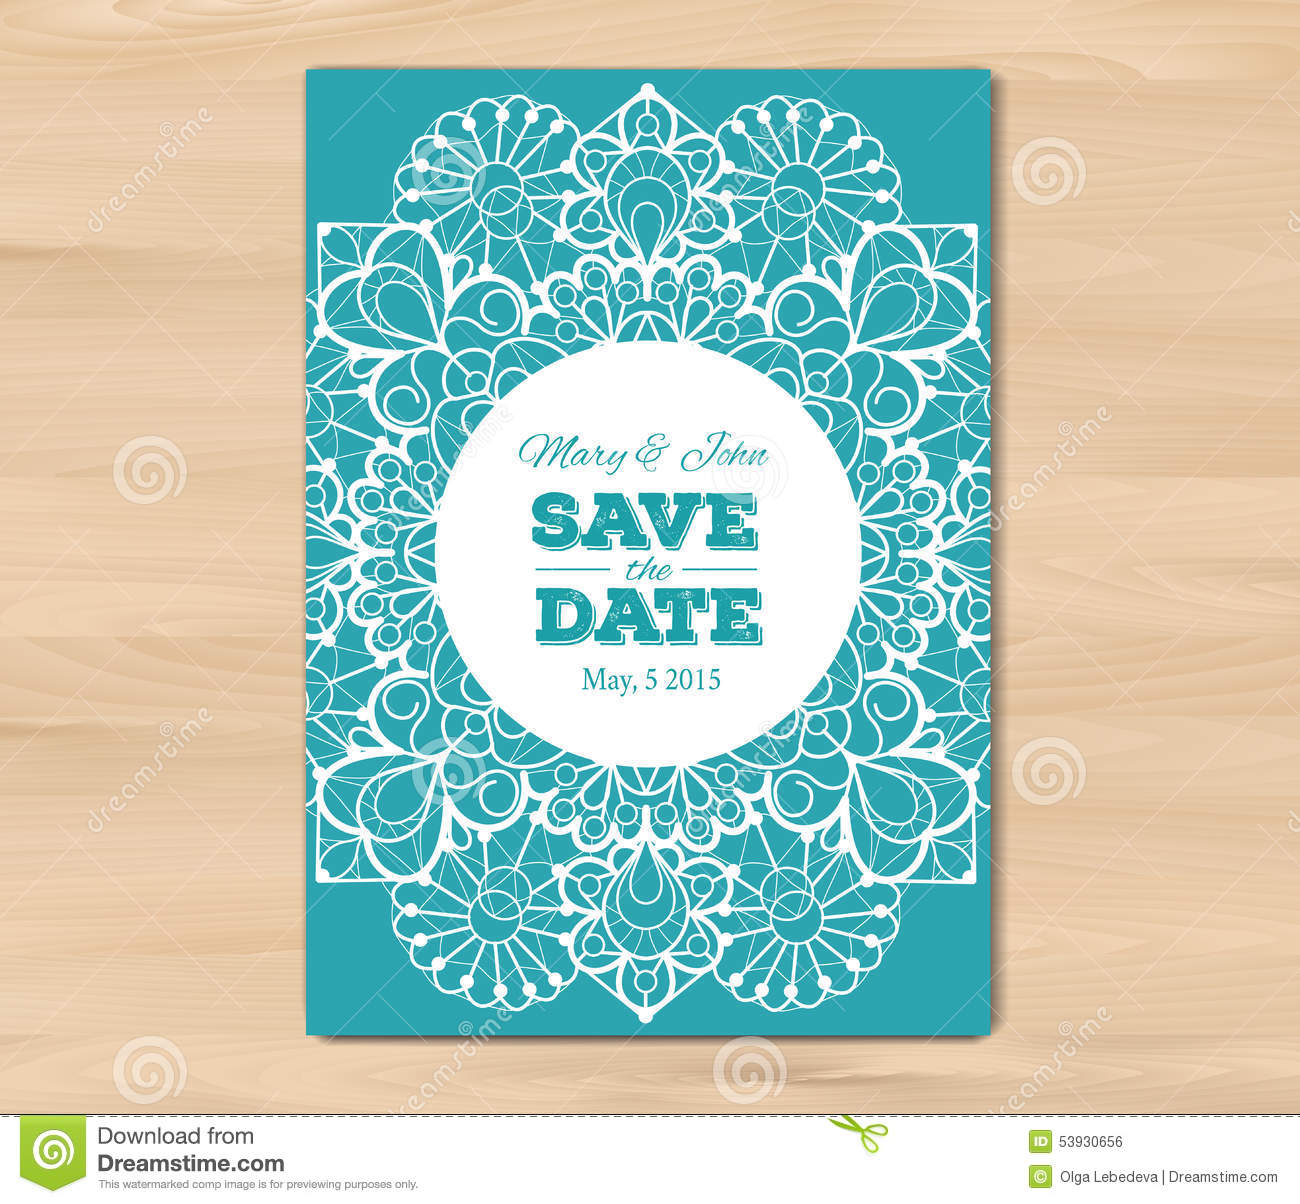 Wedding Invitation Card Template Stock Vector Illustration Of - Save the date templates free download